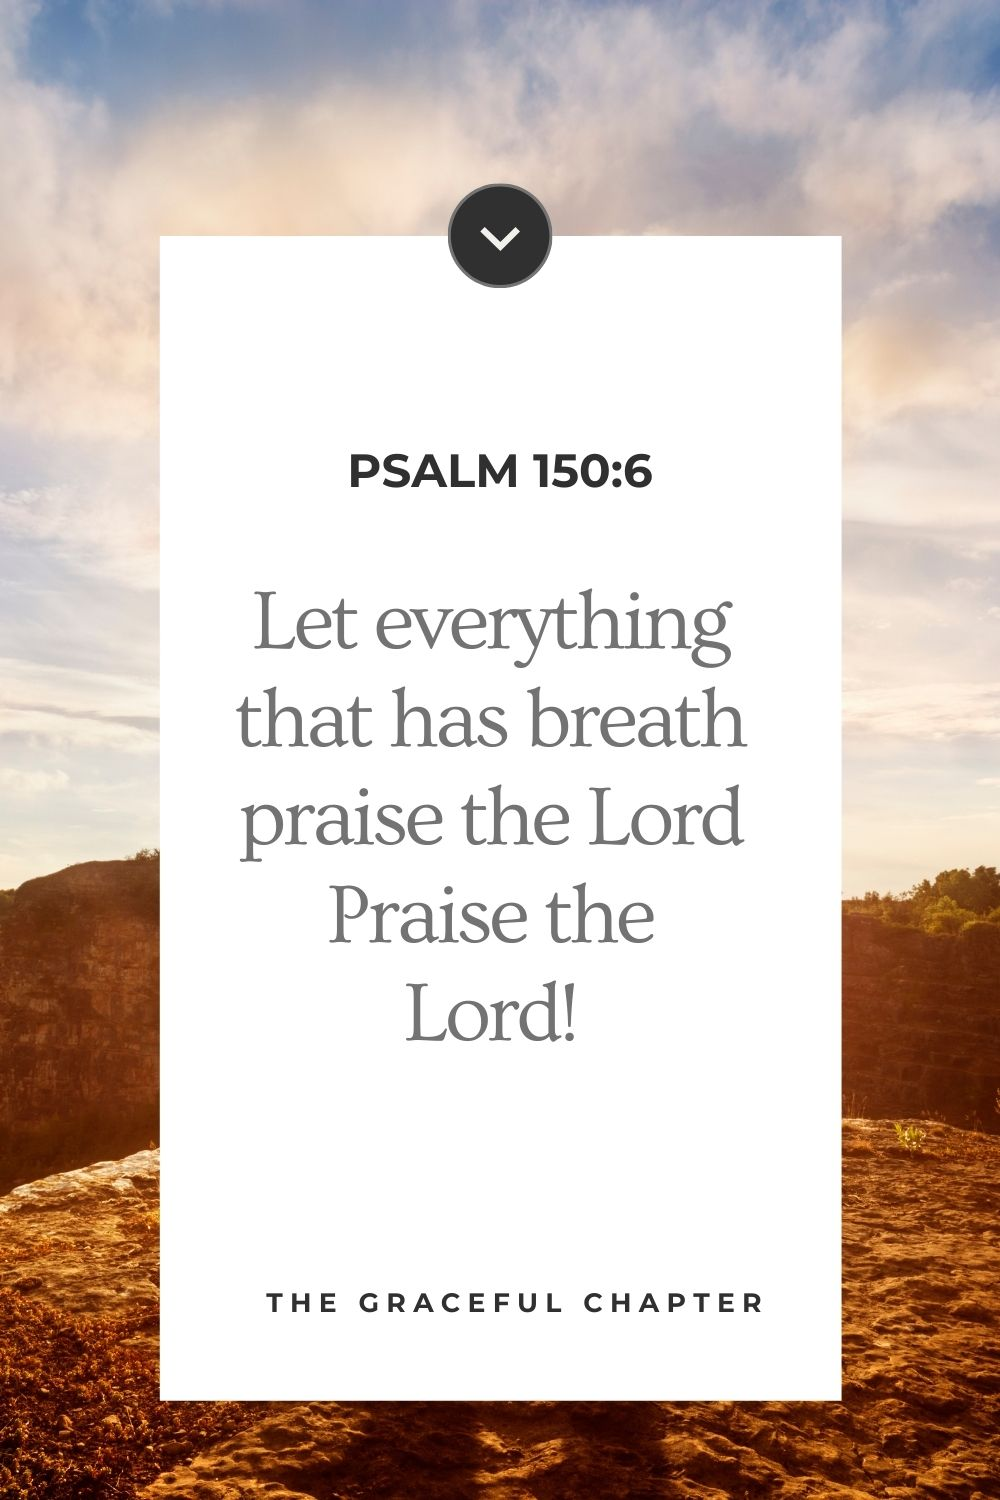 Let everything that has breath praise the Lord. Praise the Lord!